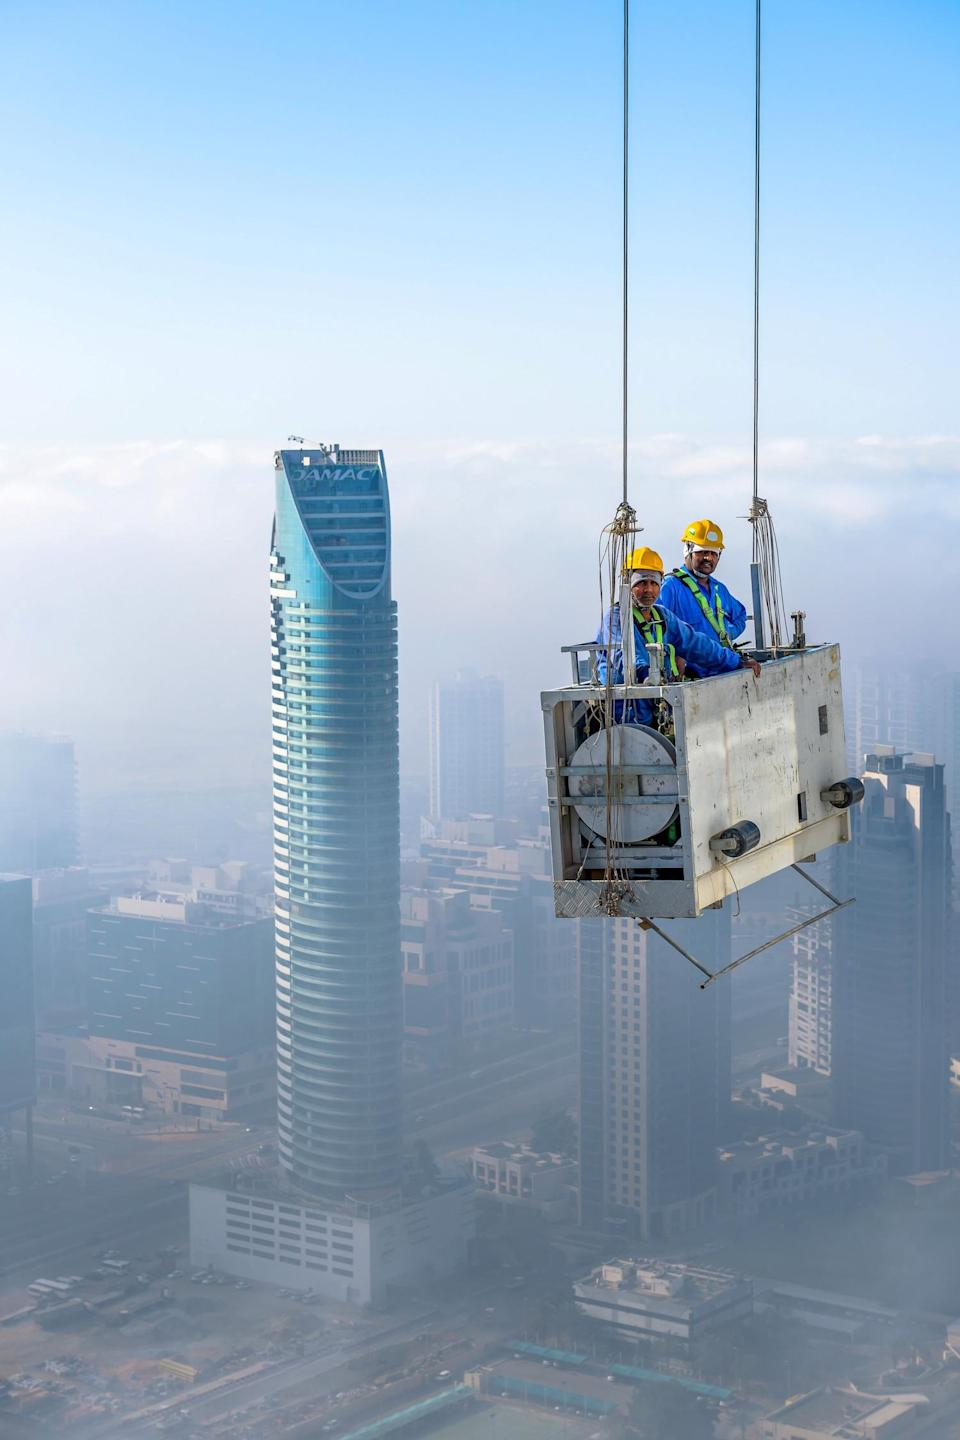 The workmen show no signs of fear as they dangle in a crib suspended by two cords 900ft above the street below. (SWNS)